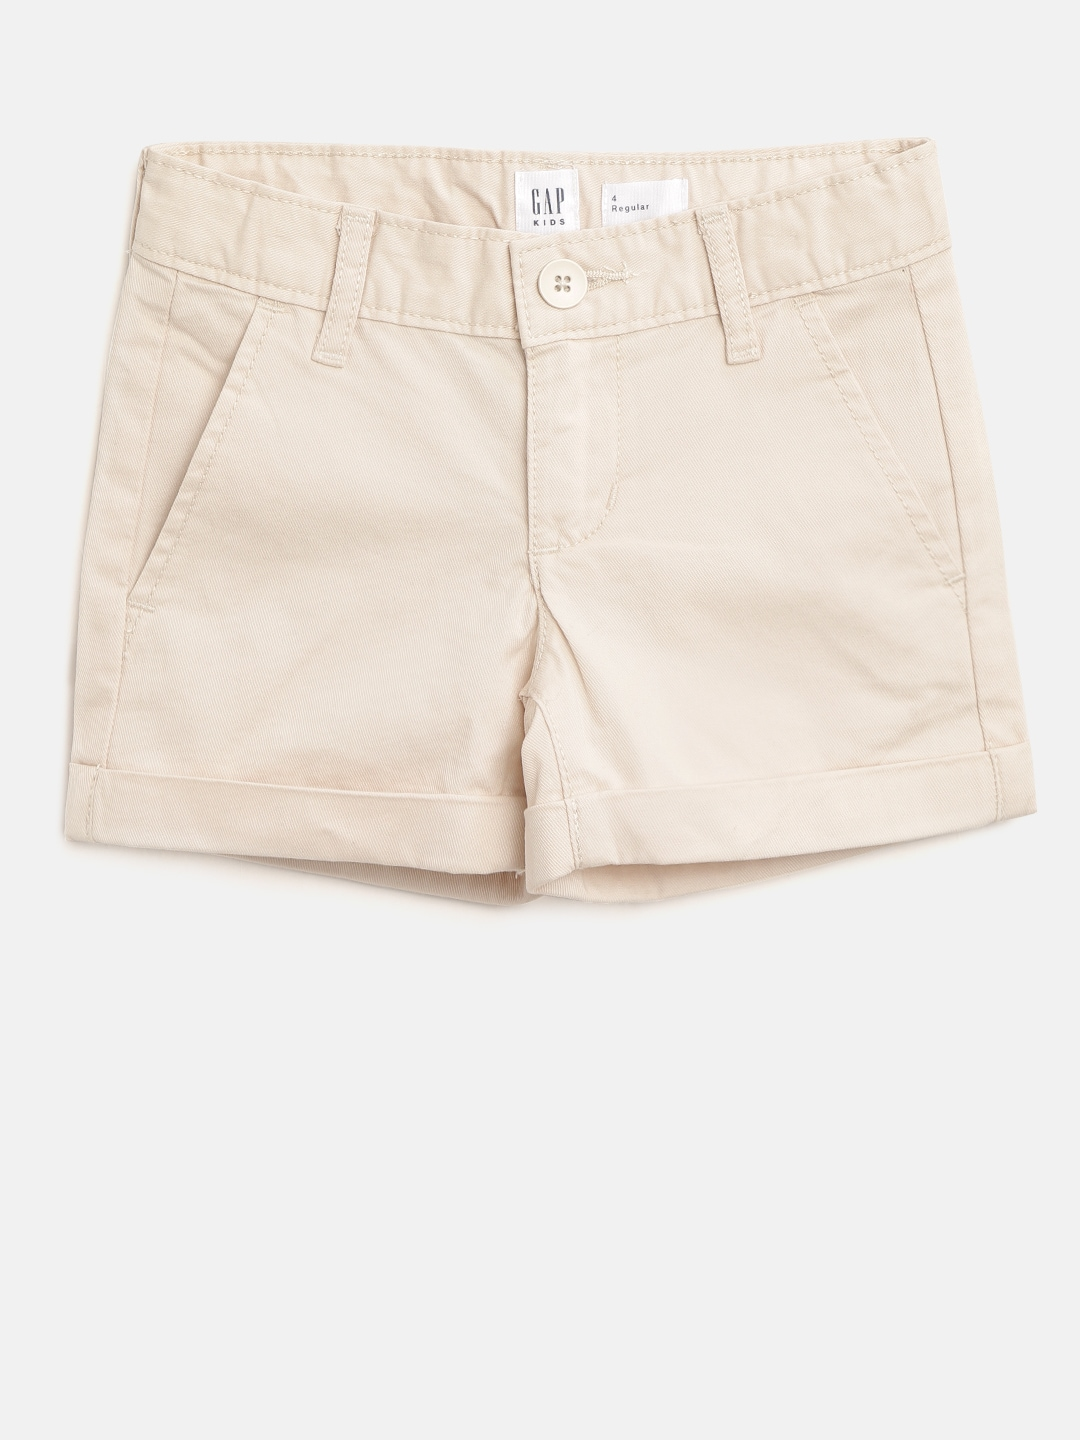 92546b148624b1 GAP - Shop from GAP Latest Collection Online